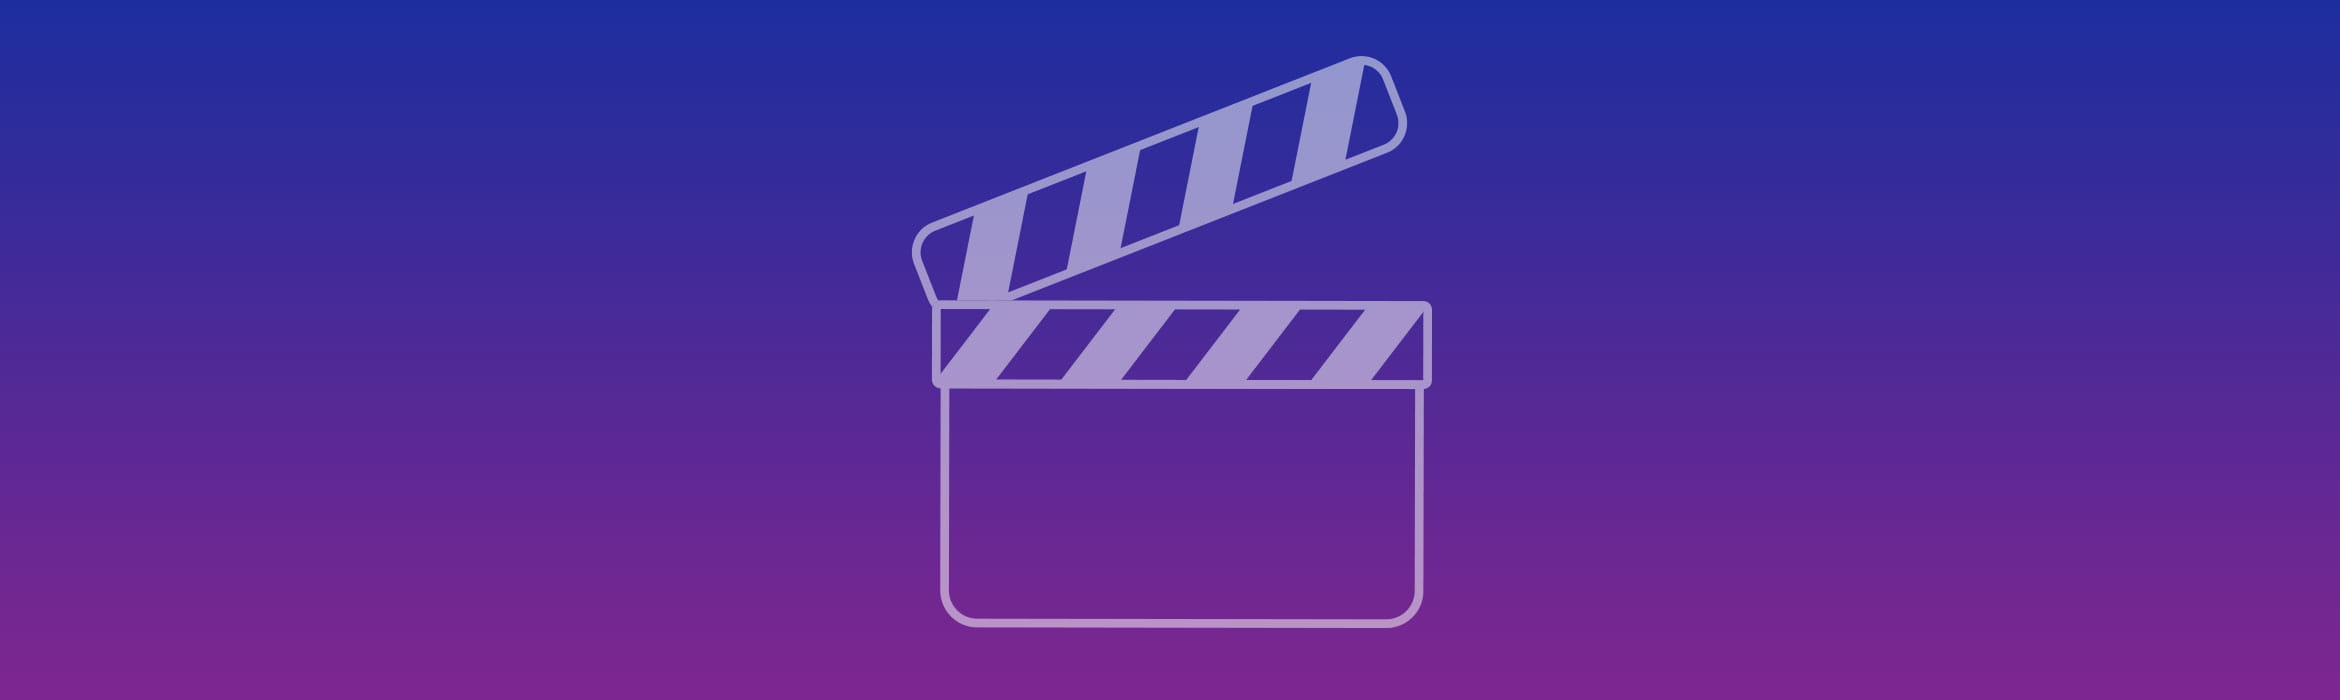 Video player logo on purple background